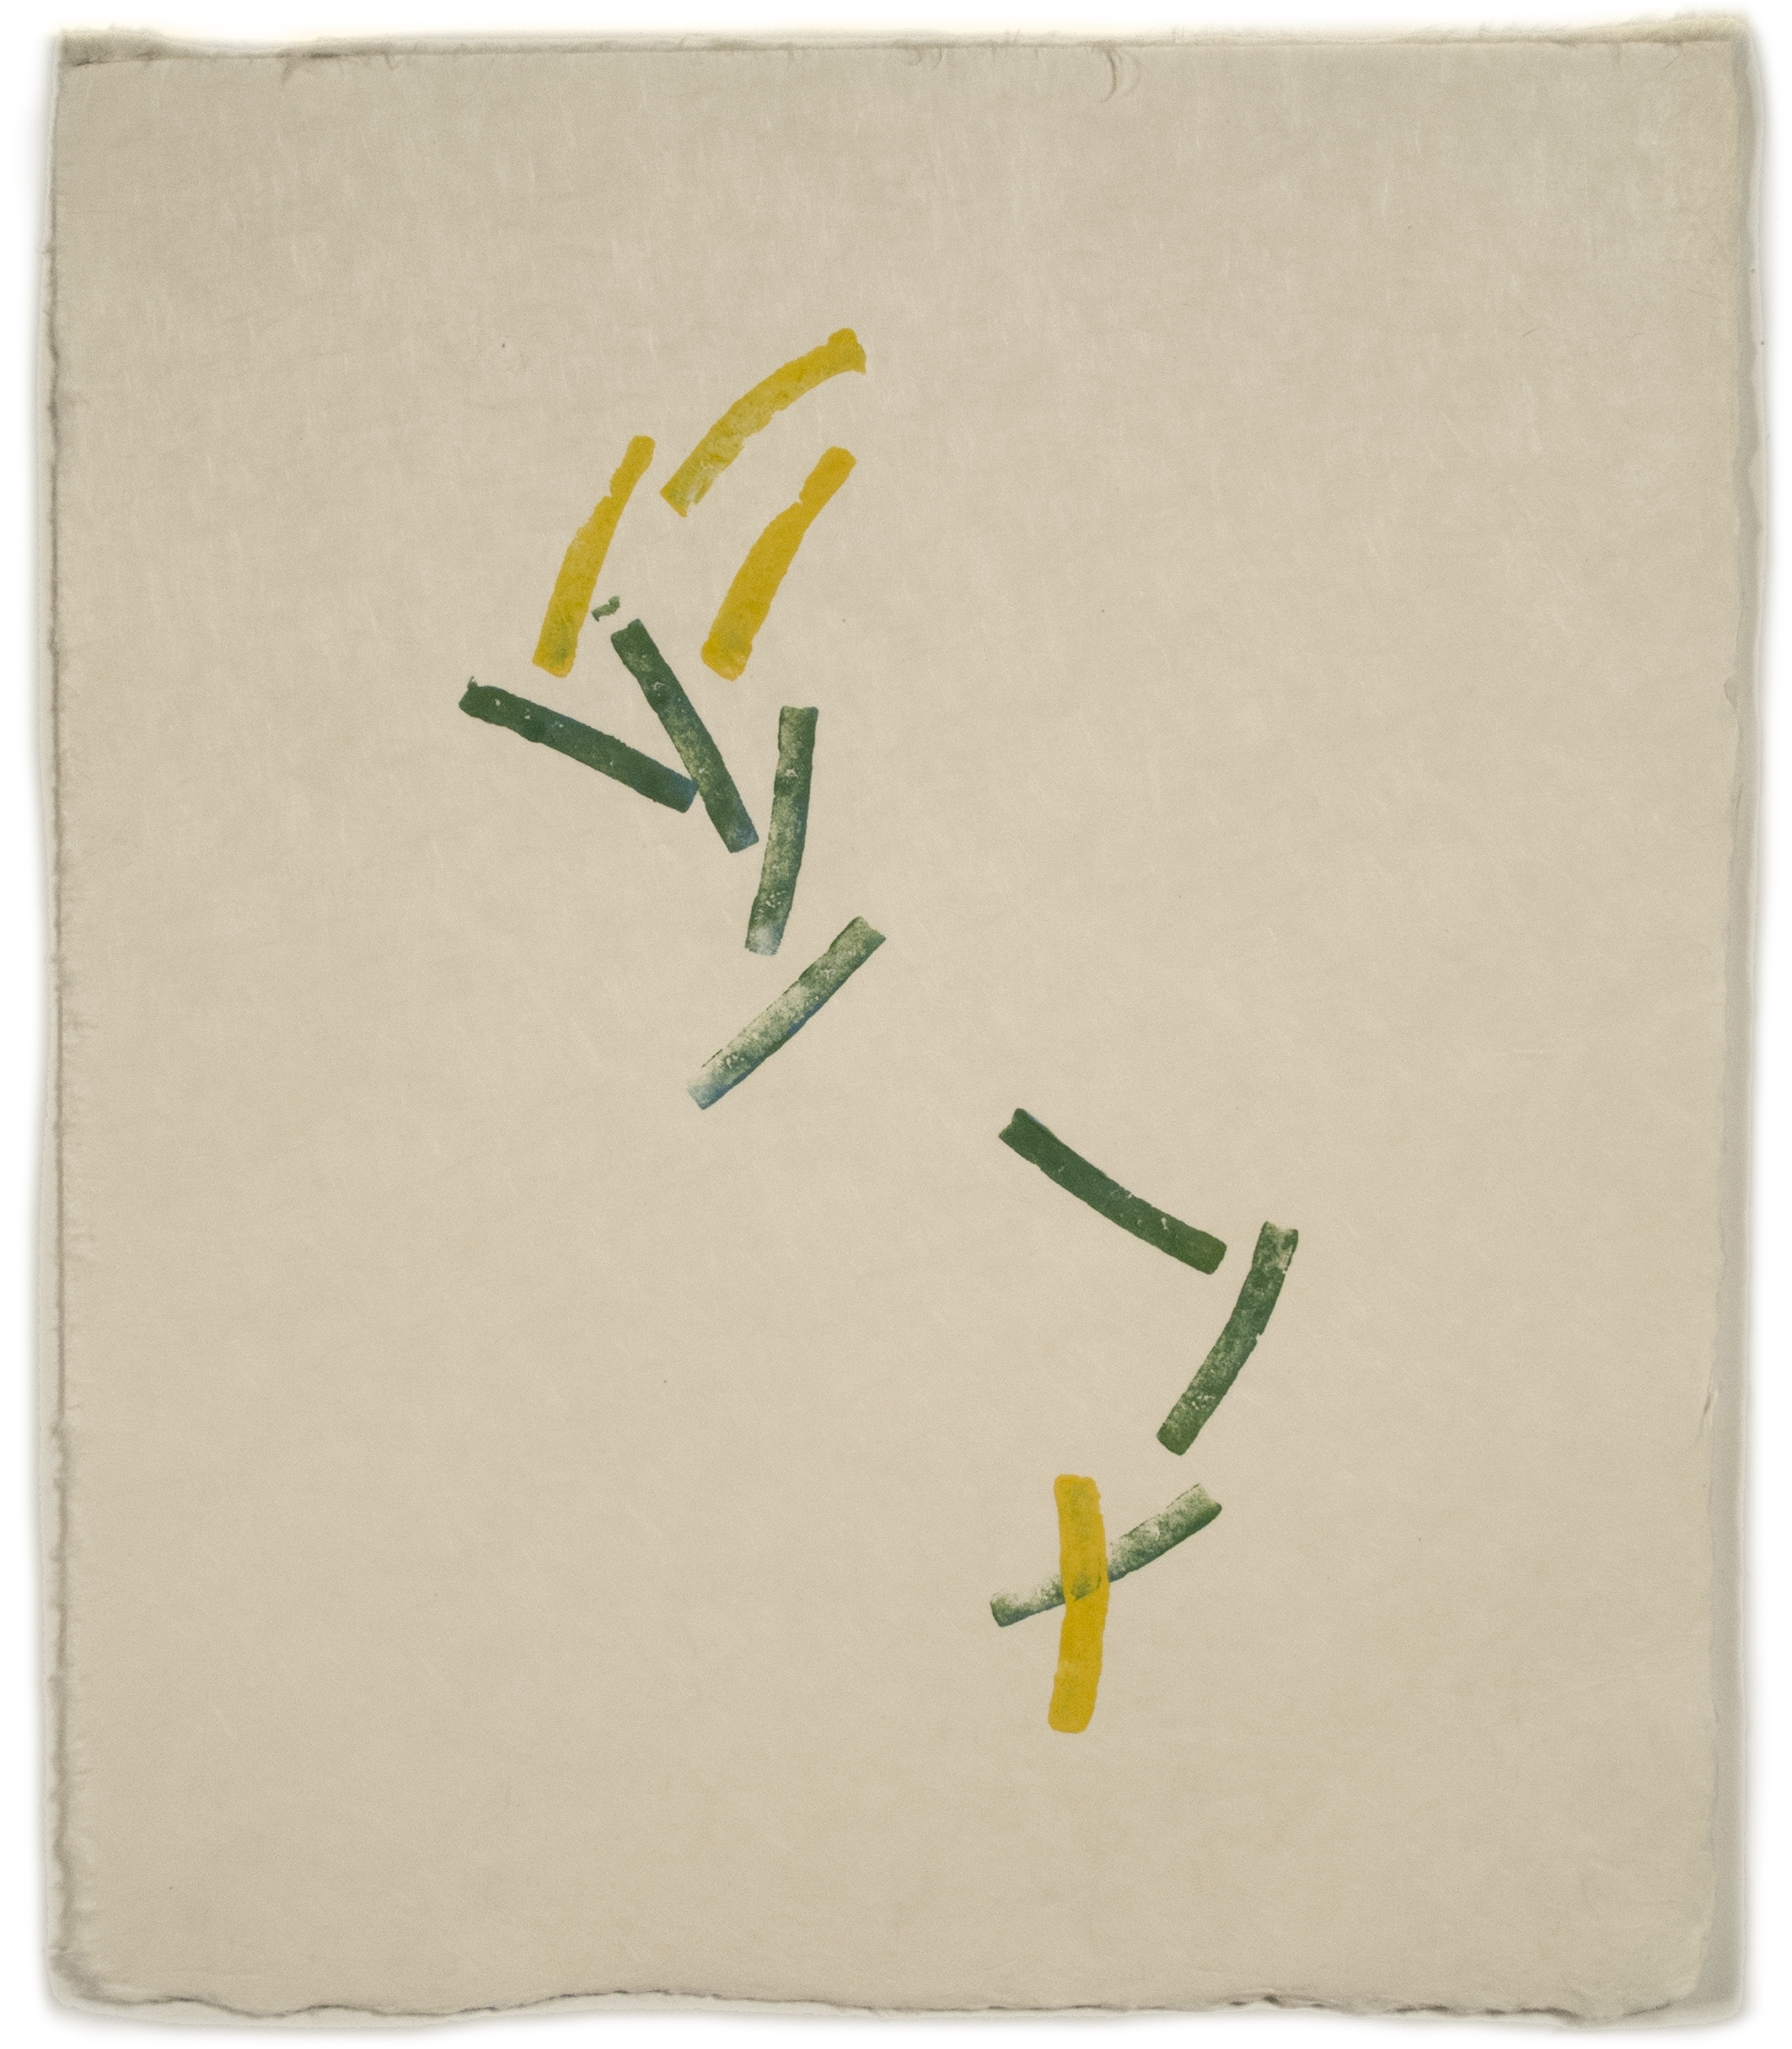 Altoon Sultan: Green and Yellow Lines, 2012, print, 13 x 11, Paper from Cone studio